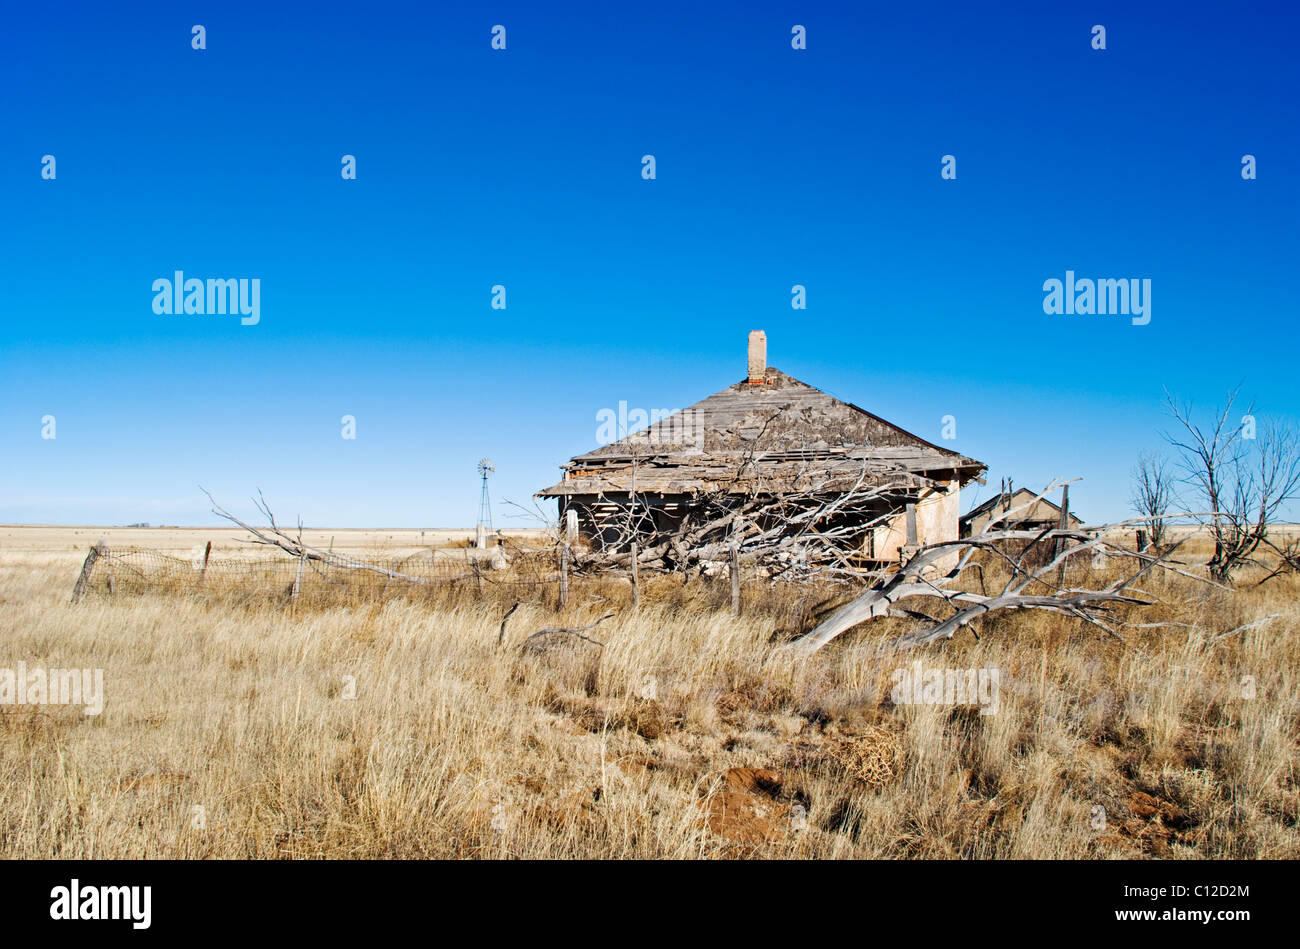 A distant windmill and deserted homestead echoes a more vibrant past in this northeastern portion of New Mexico. - Stock Image